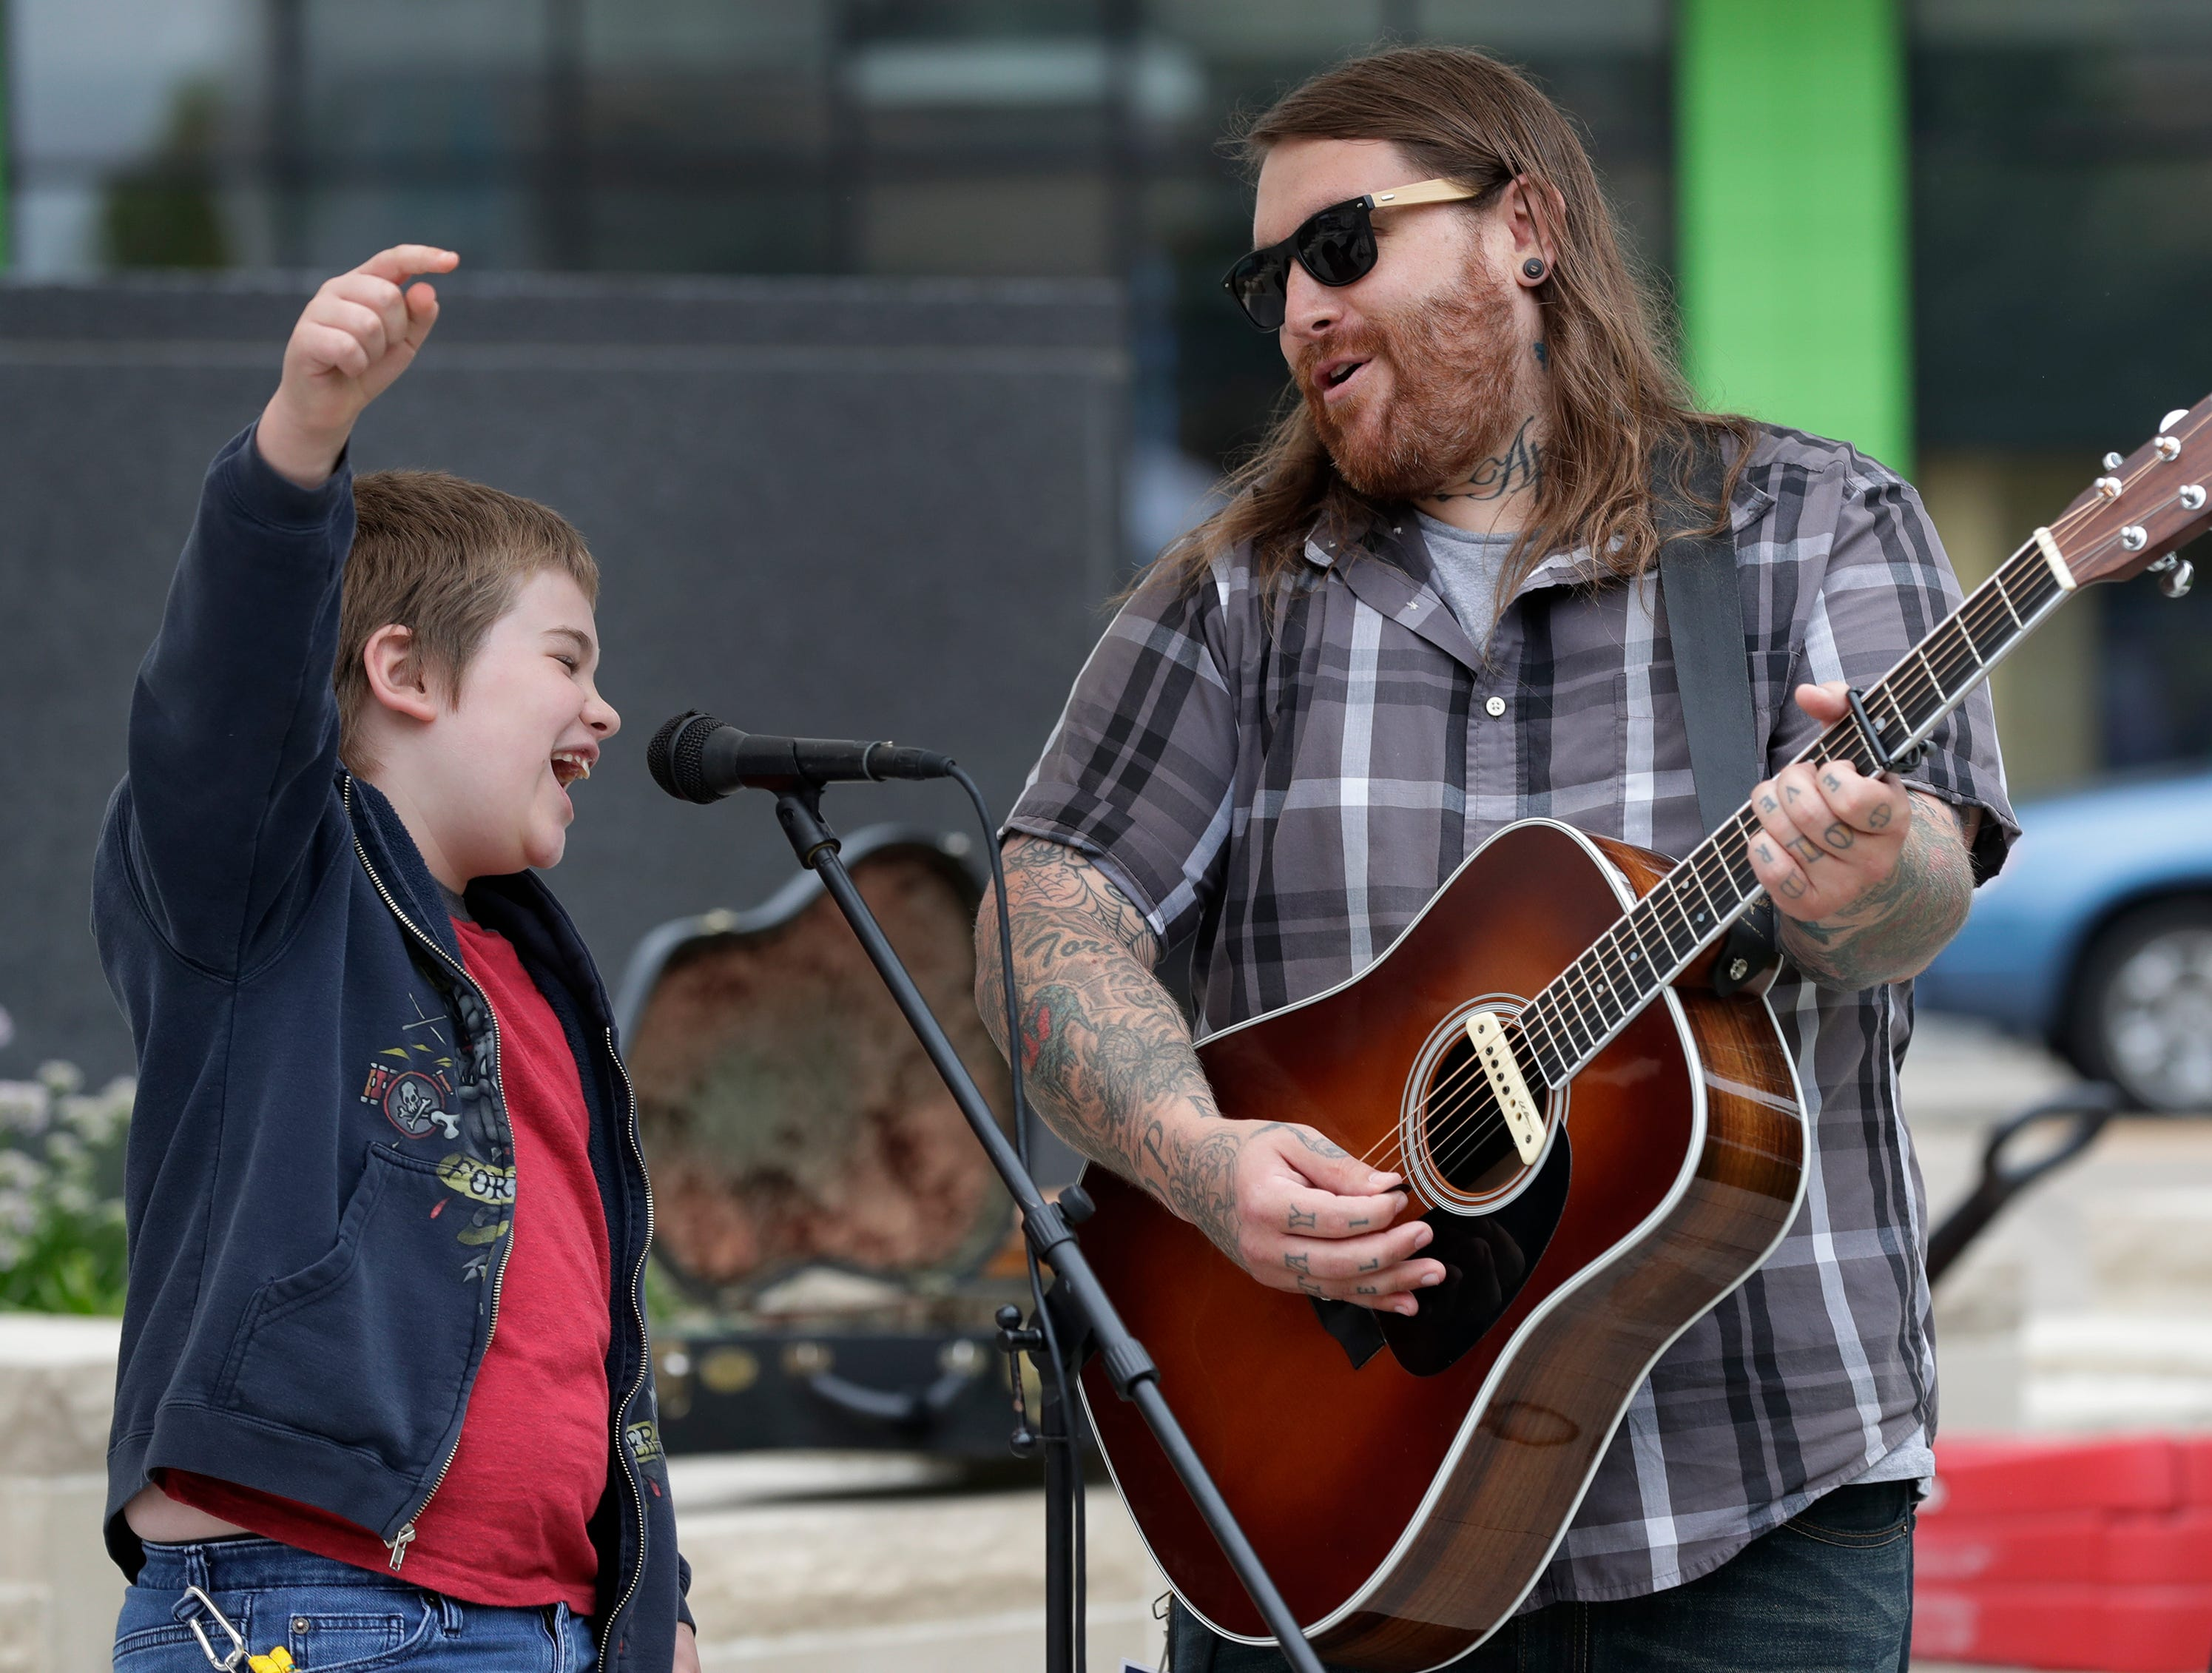 Oliver Gold, 9, left, performs a duet with his father Christopher Gold at Houdini Plaza during the Mile of Music Thursday, August 2, 2018, in Appleton, Wis.  